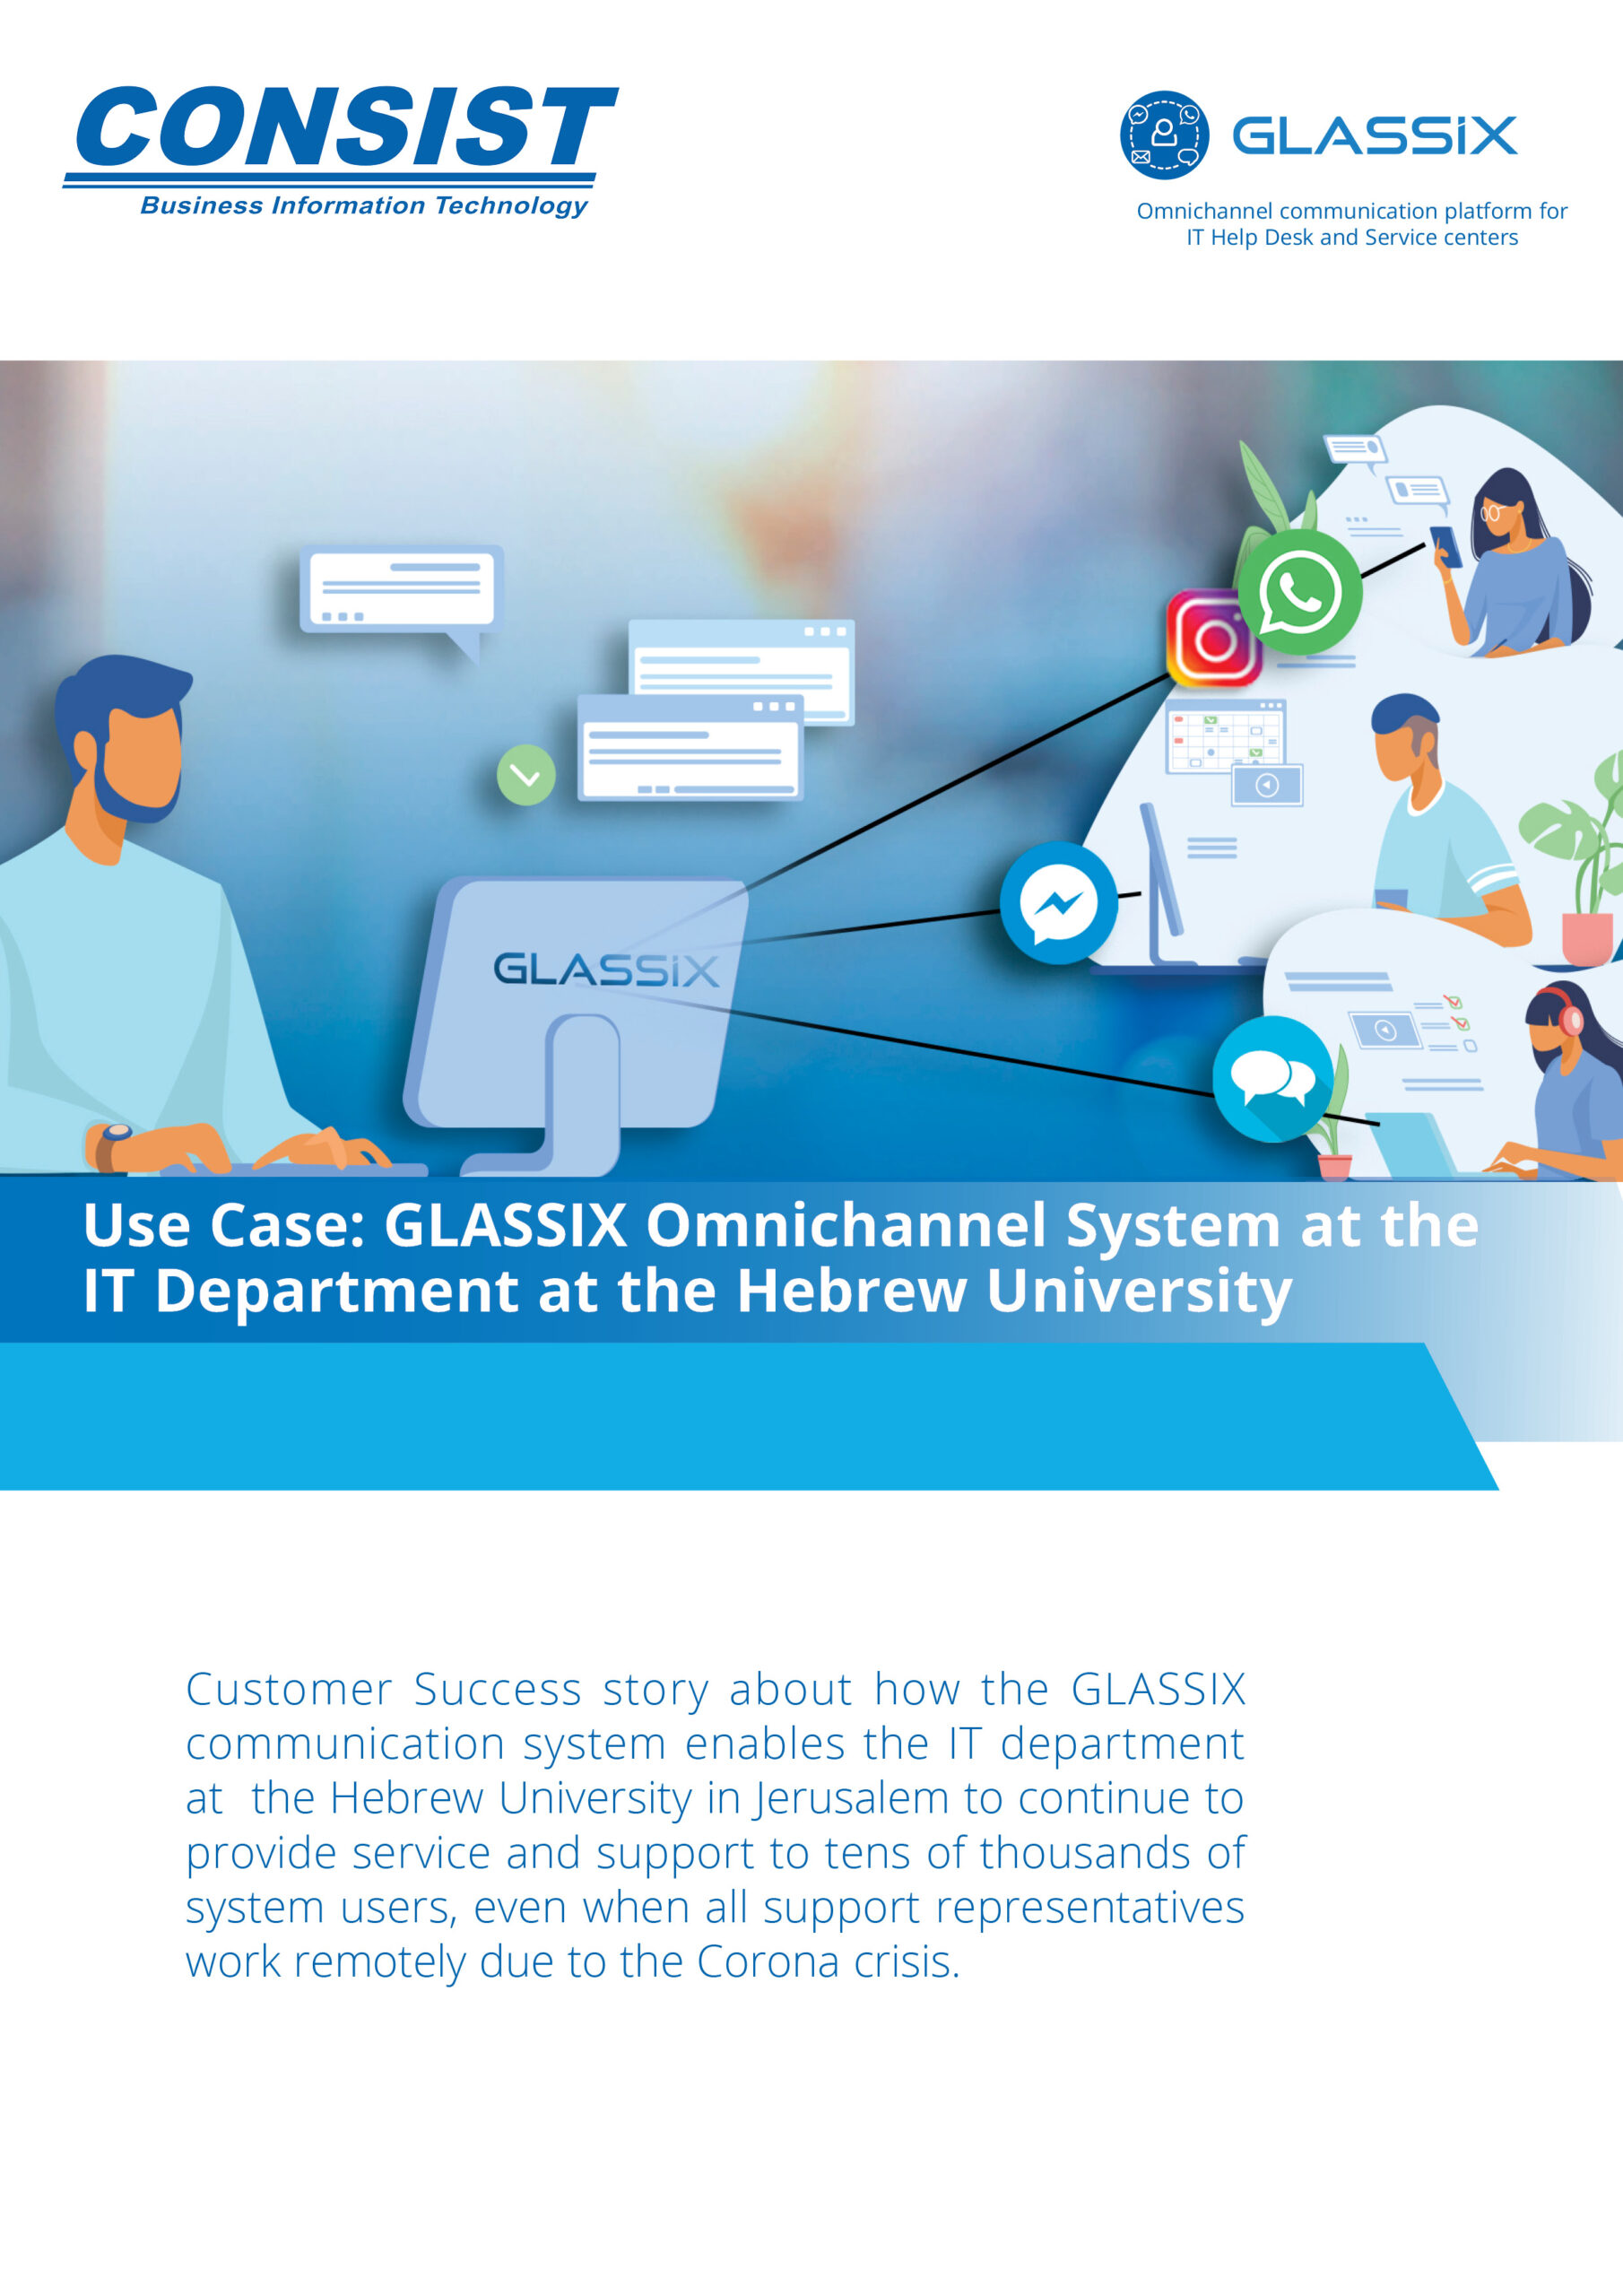 Use Case - Glassix as Omnichannel ITSM system at the Hebrew University